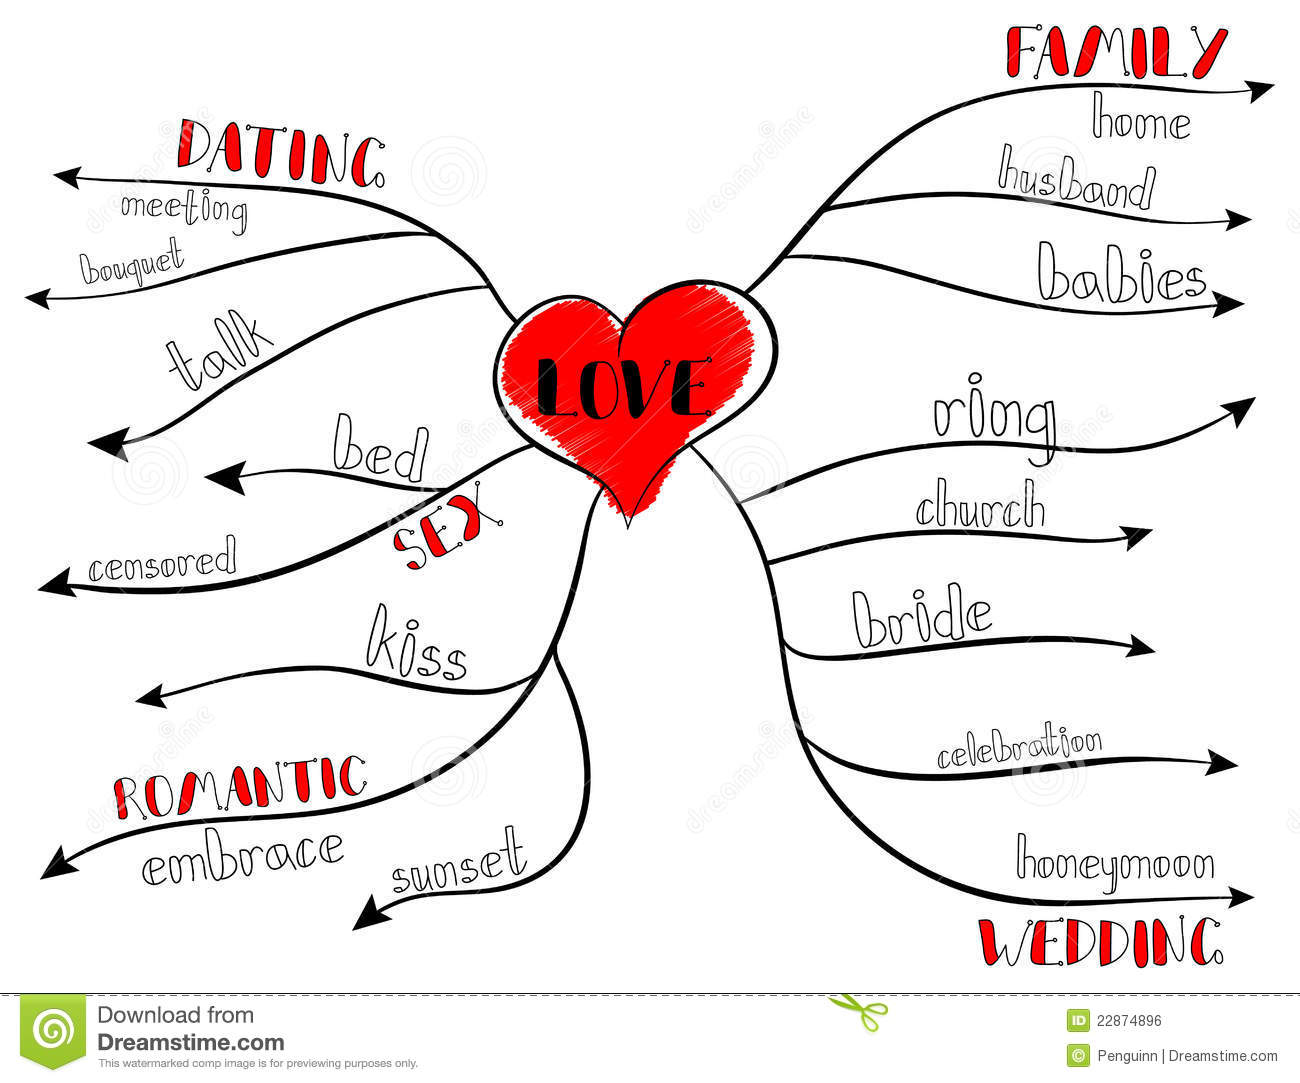 dating mind map